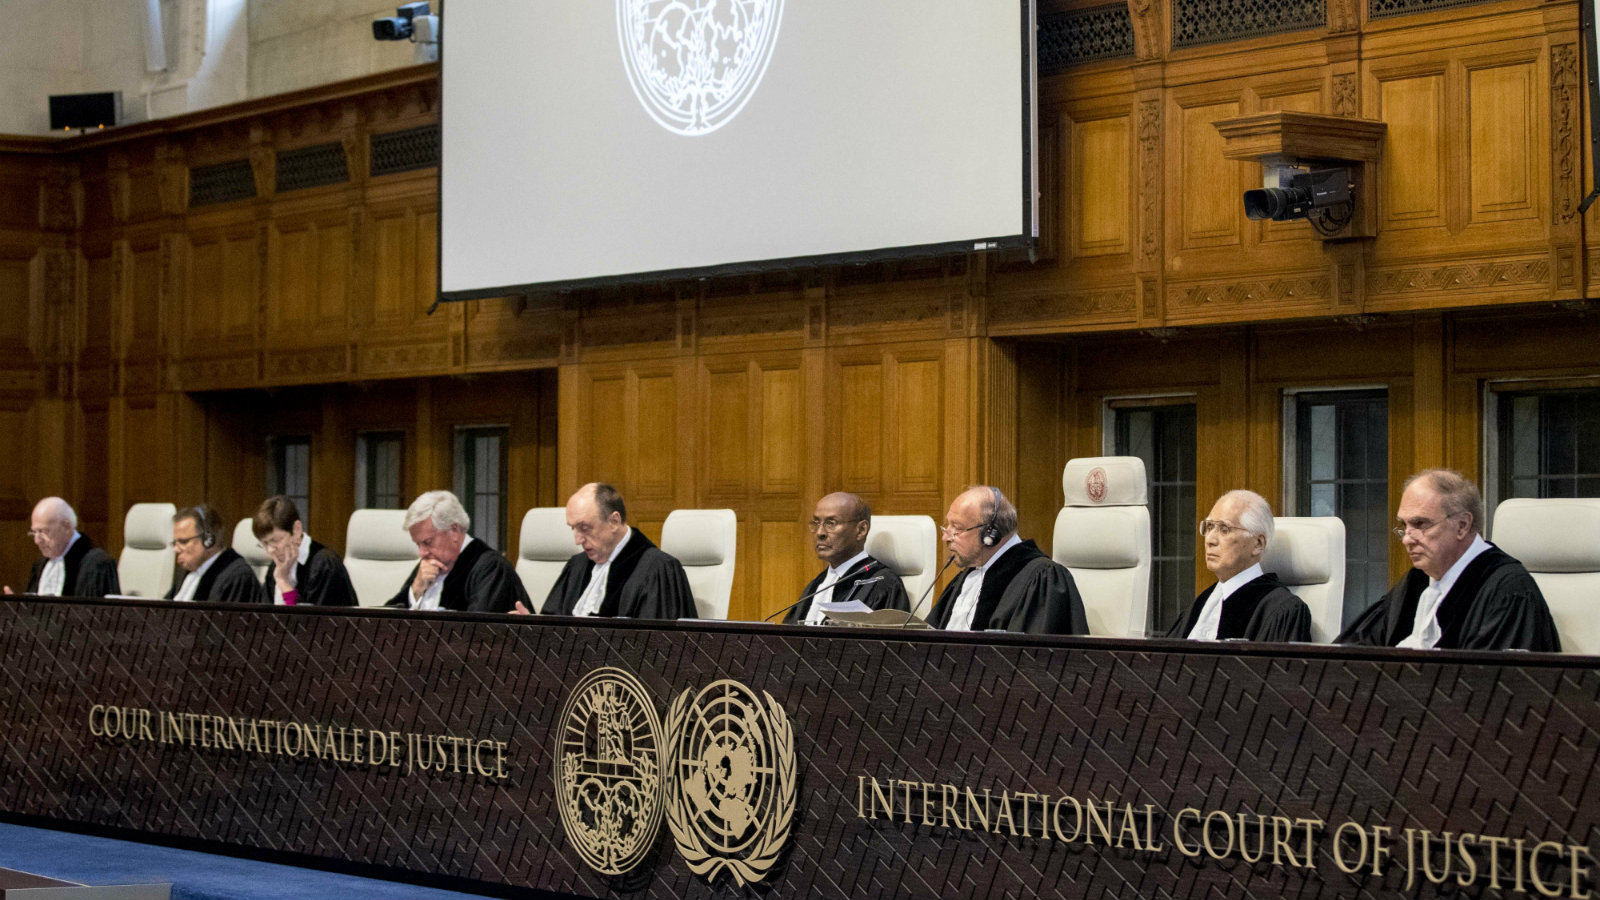 Judges presiding in the ruling of the International Court of Justice on Ukraine's request for emergency order to stop Russia financing, supporting, and arming rebels in the East, during the ICJ session in The Hague, Netherlands, 19 April 2017.